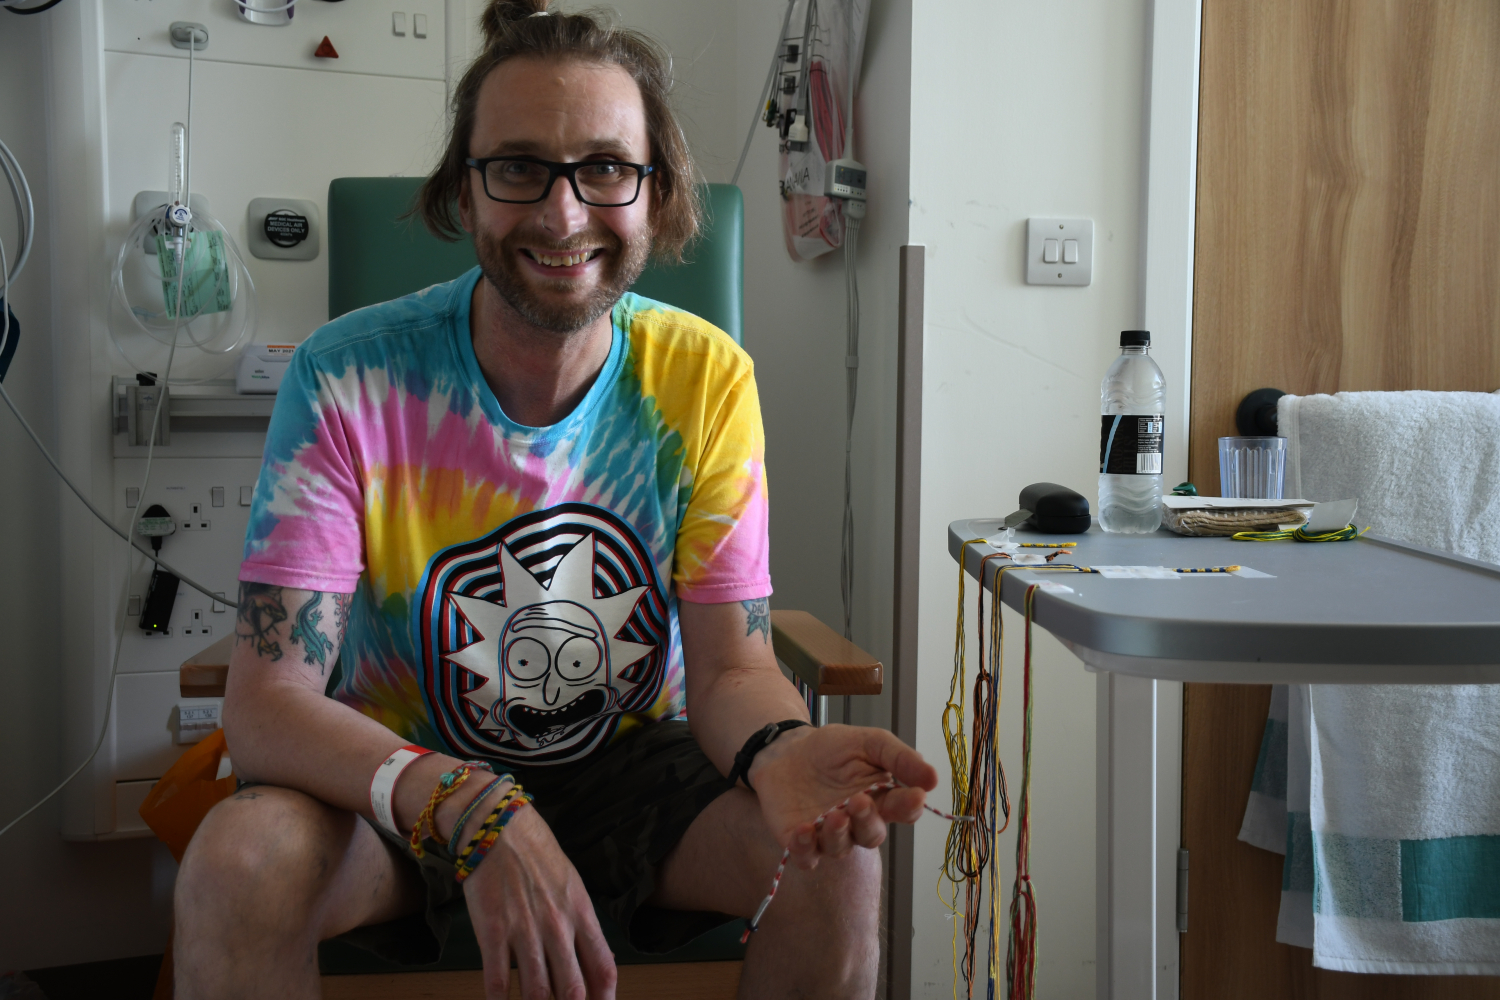 Richard has made friendship bracelets for staff who looked after him.jpg